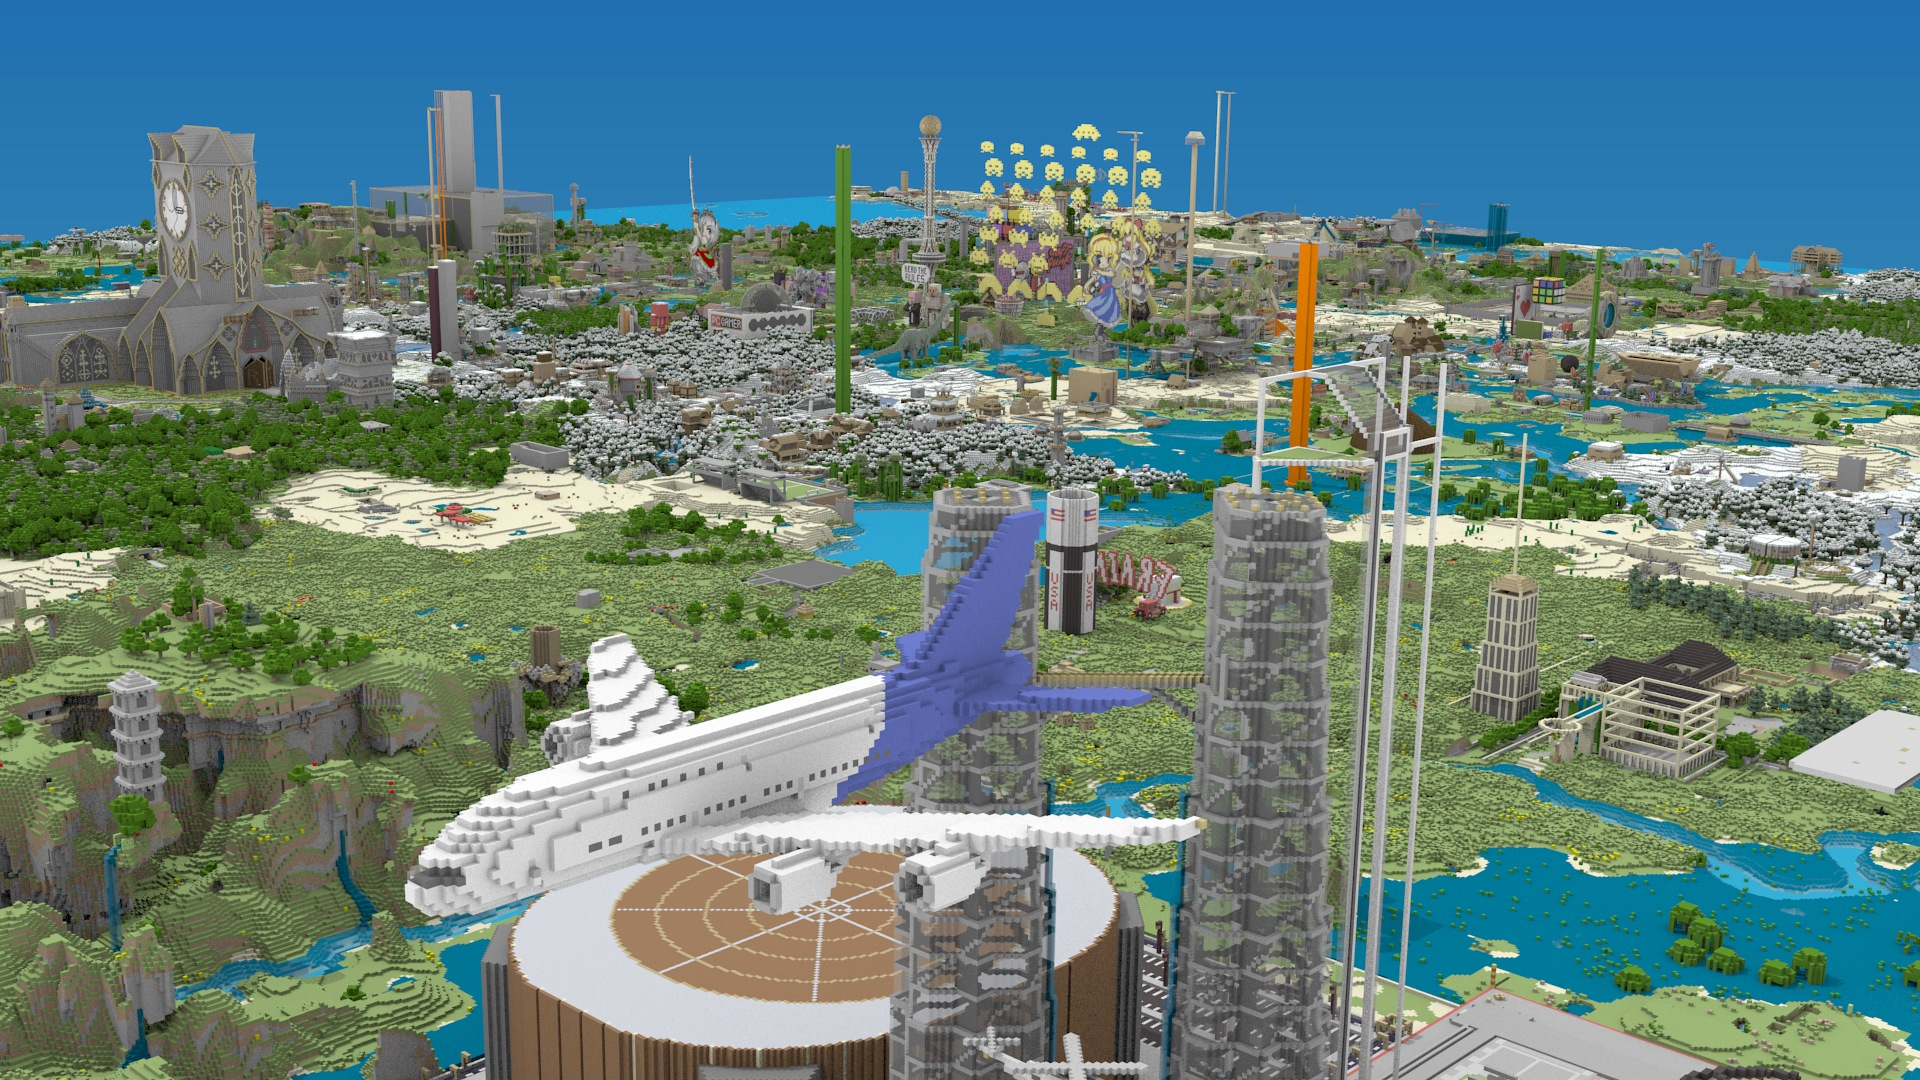 Minecraft By Zyczu - Free downloads and reviews - CNET